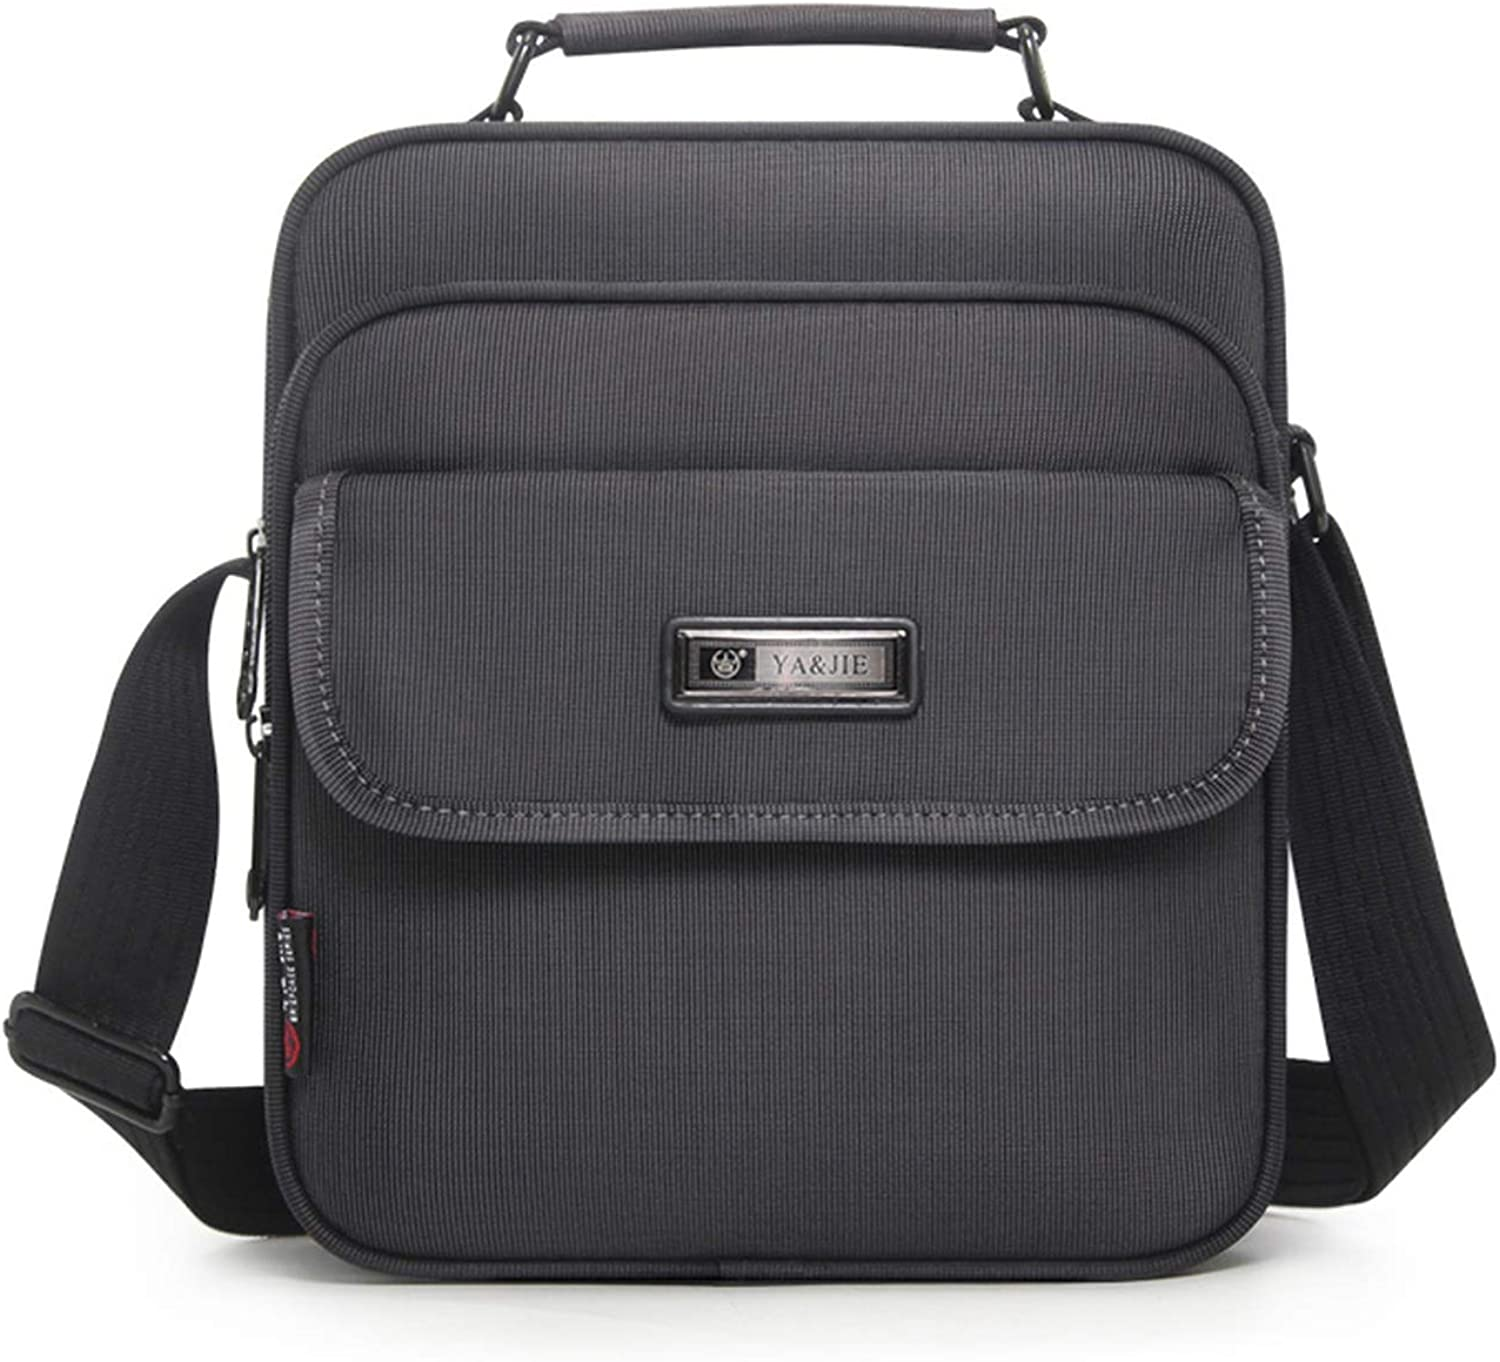 Brand Oxford Business Men Messenger Bag Mens Shoulder Bag 9.7 inch Ipad Crossbody Bags Waterproof